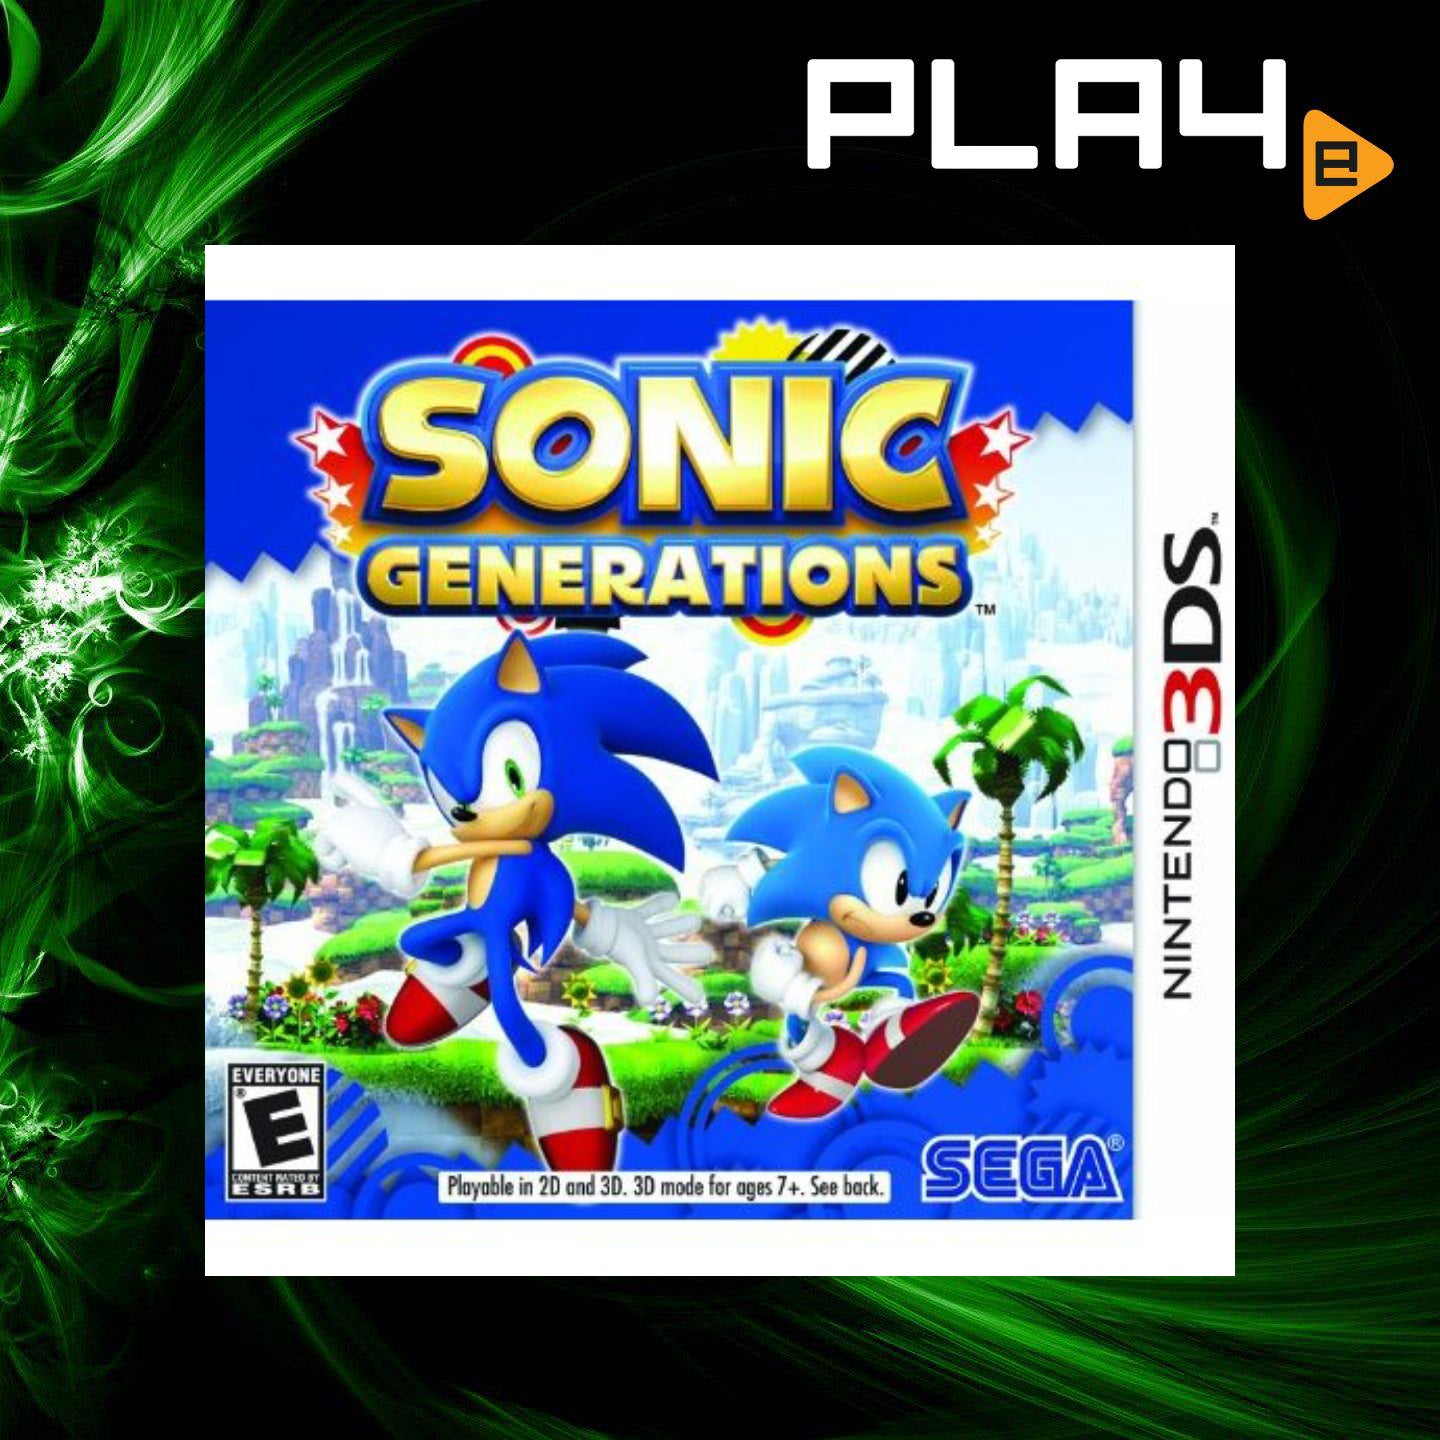 3DS Sonic Generations | PLAYe